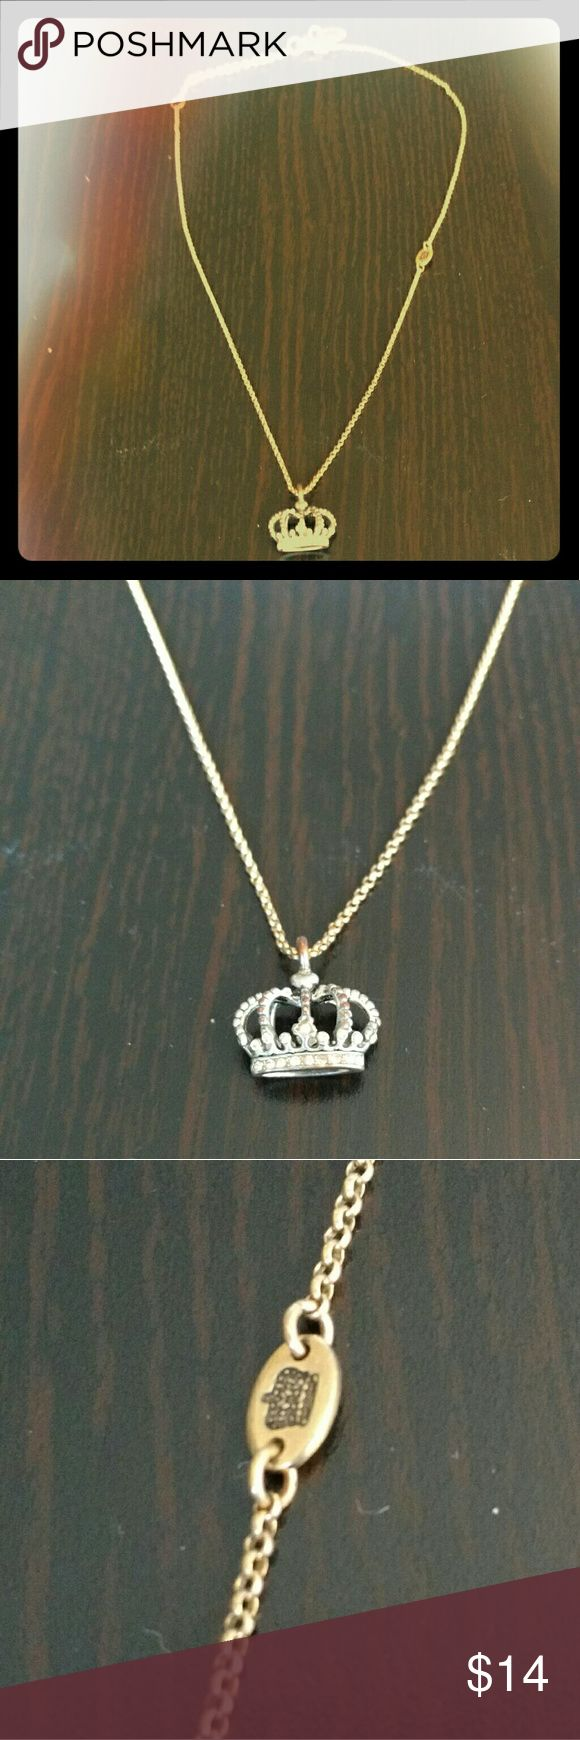 Juicy Couture Crown Necklace Juicy Couture pendant necklace with crown charm, crown plate accent, J stamped clasp, and crown stamped end tab. Juicy Couture Jewelry Necklaces